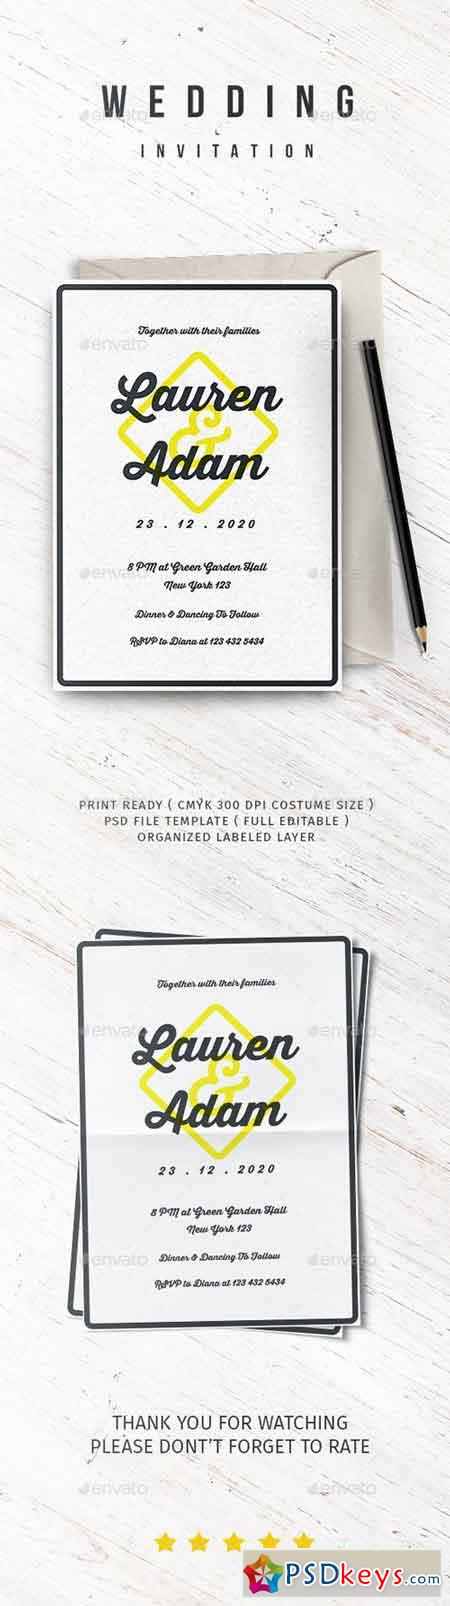 Wedding Invitation Vol.3 20932245